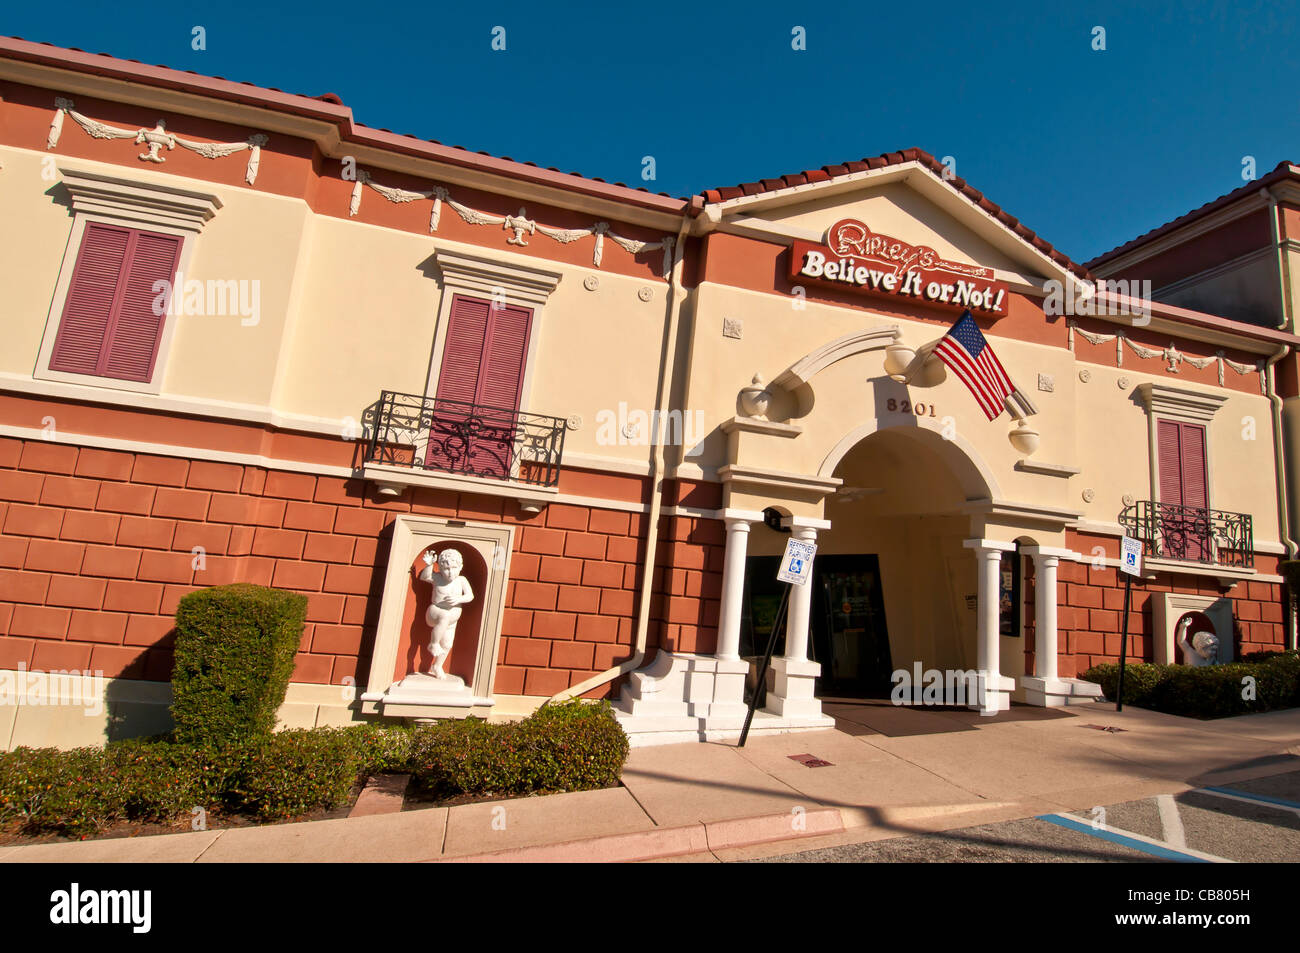 Ripley's Believe It Or Not attraction tilting building on International Drive, Orlando Florida - Stock Image